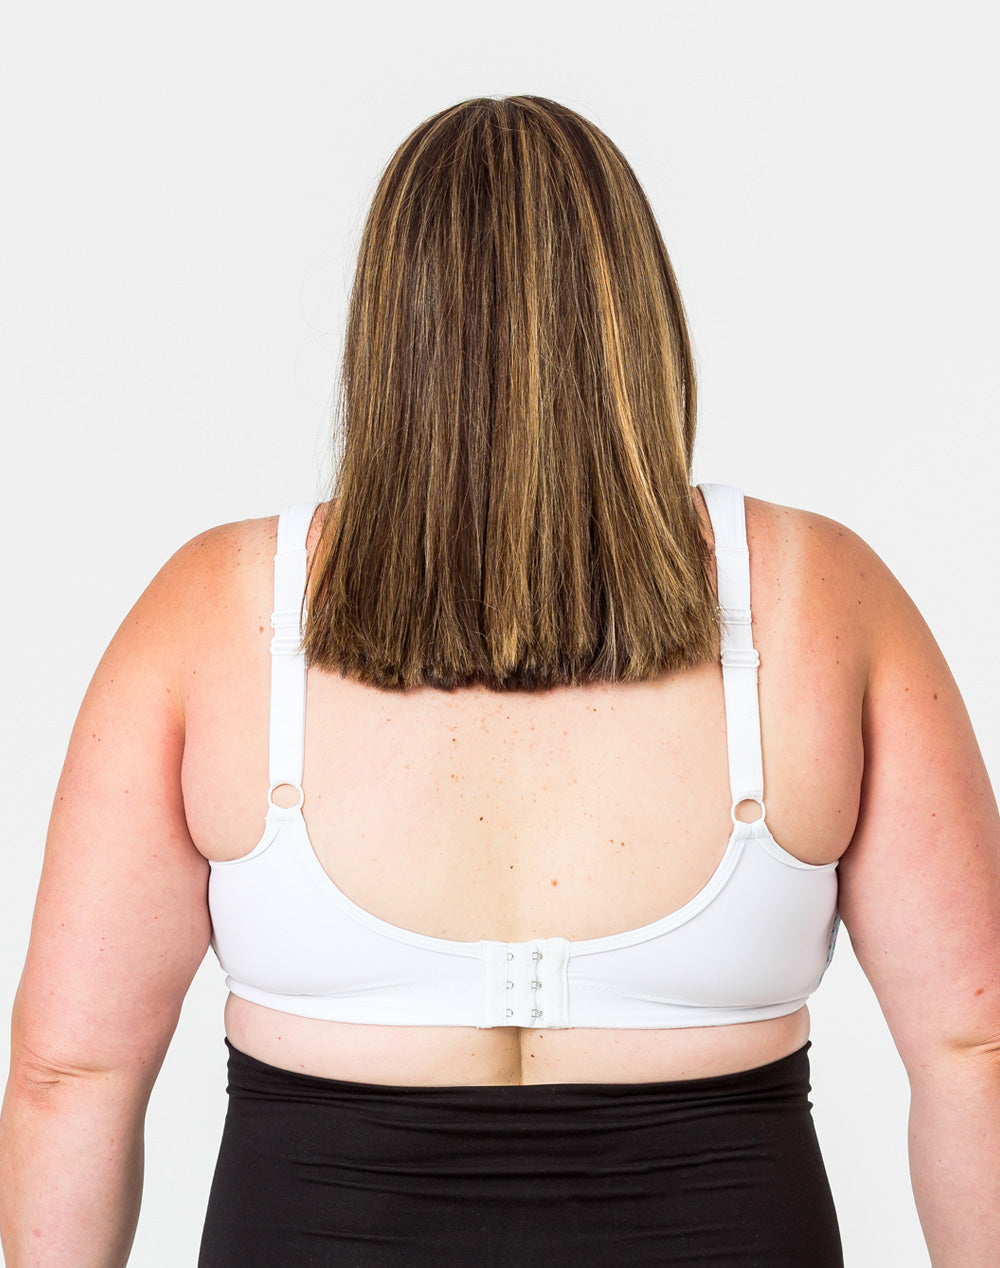 back view of a mom wearing a plus size nursing bra with thick bra straps to provide optimal support